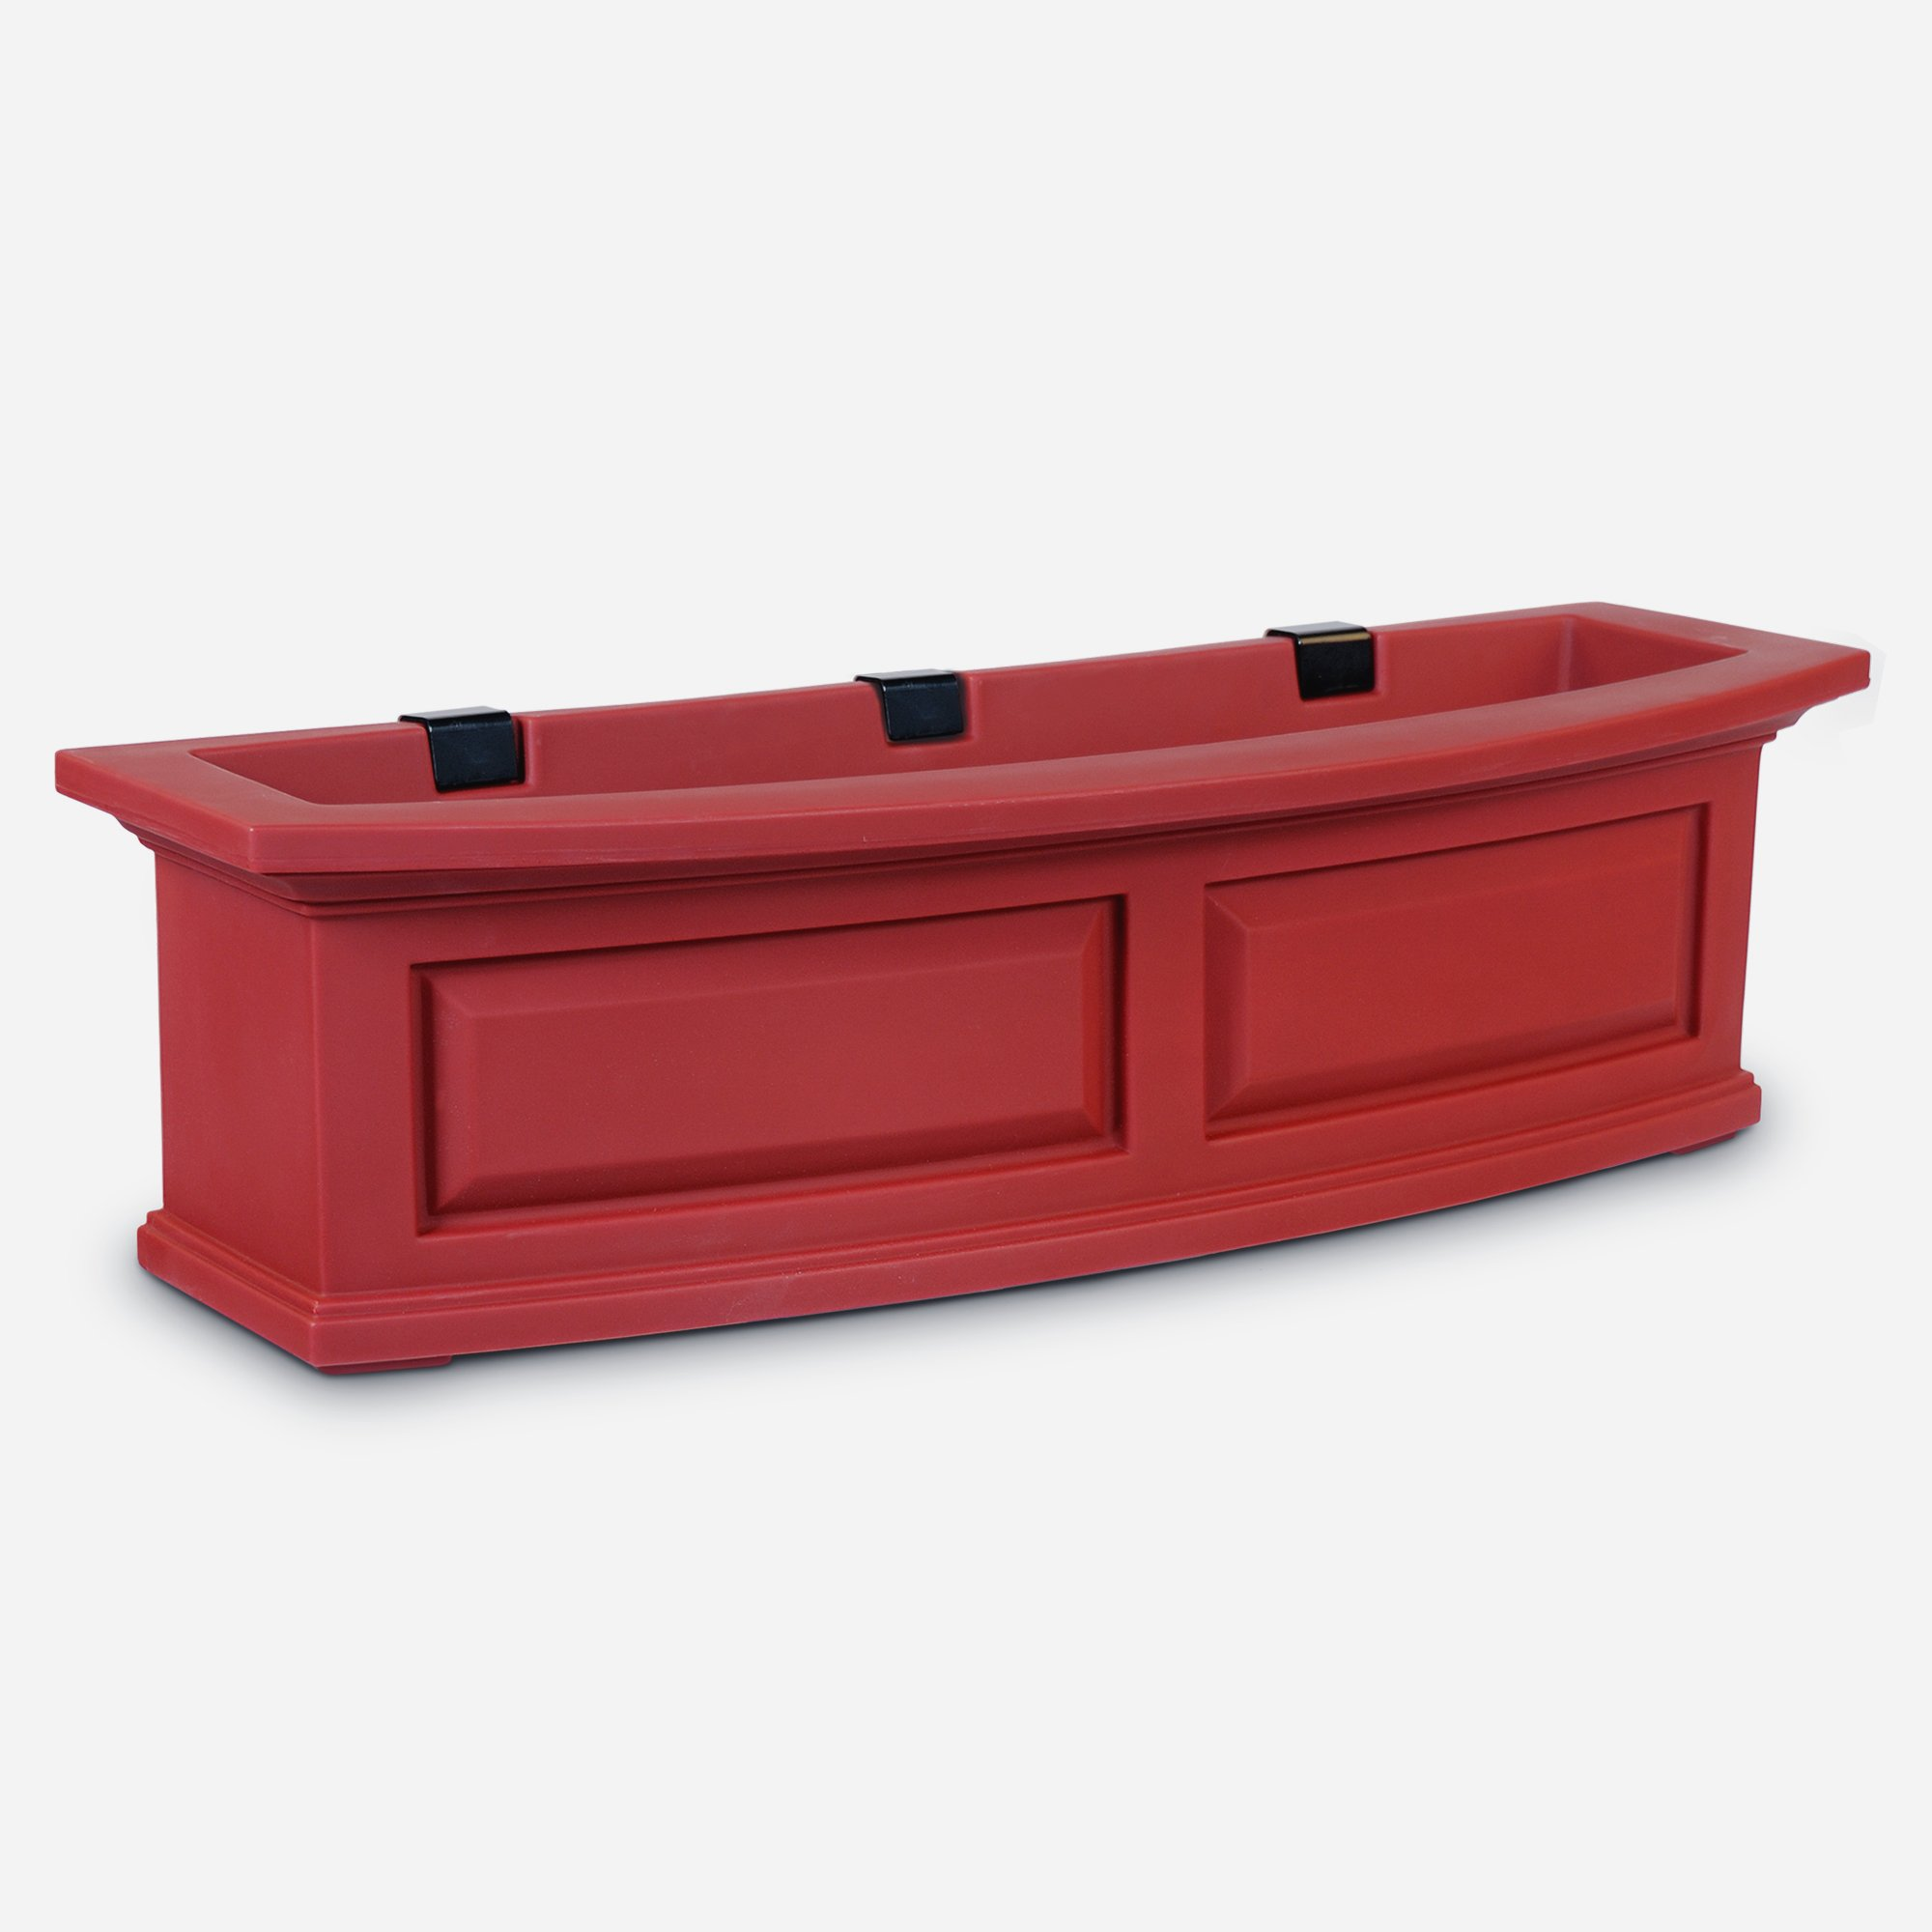 Mayne 4830-R Polyethylene Window Box, Red by Mayne